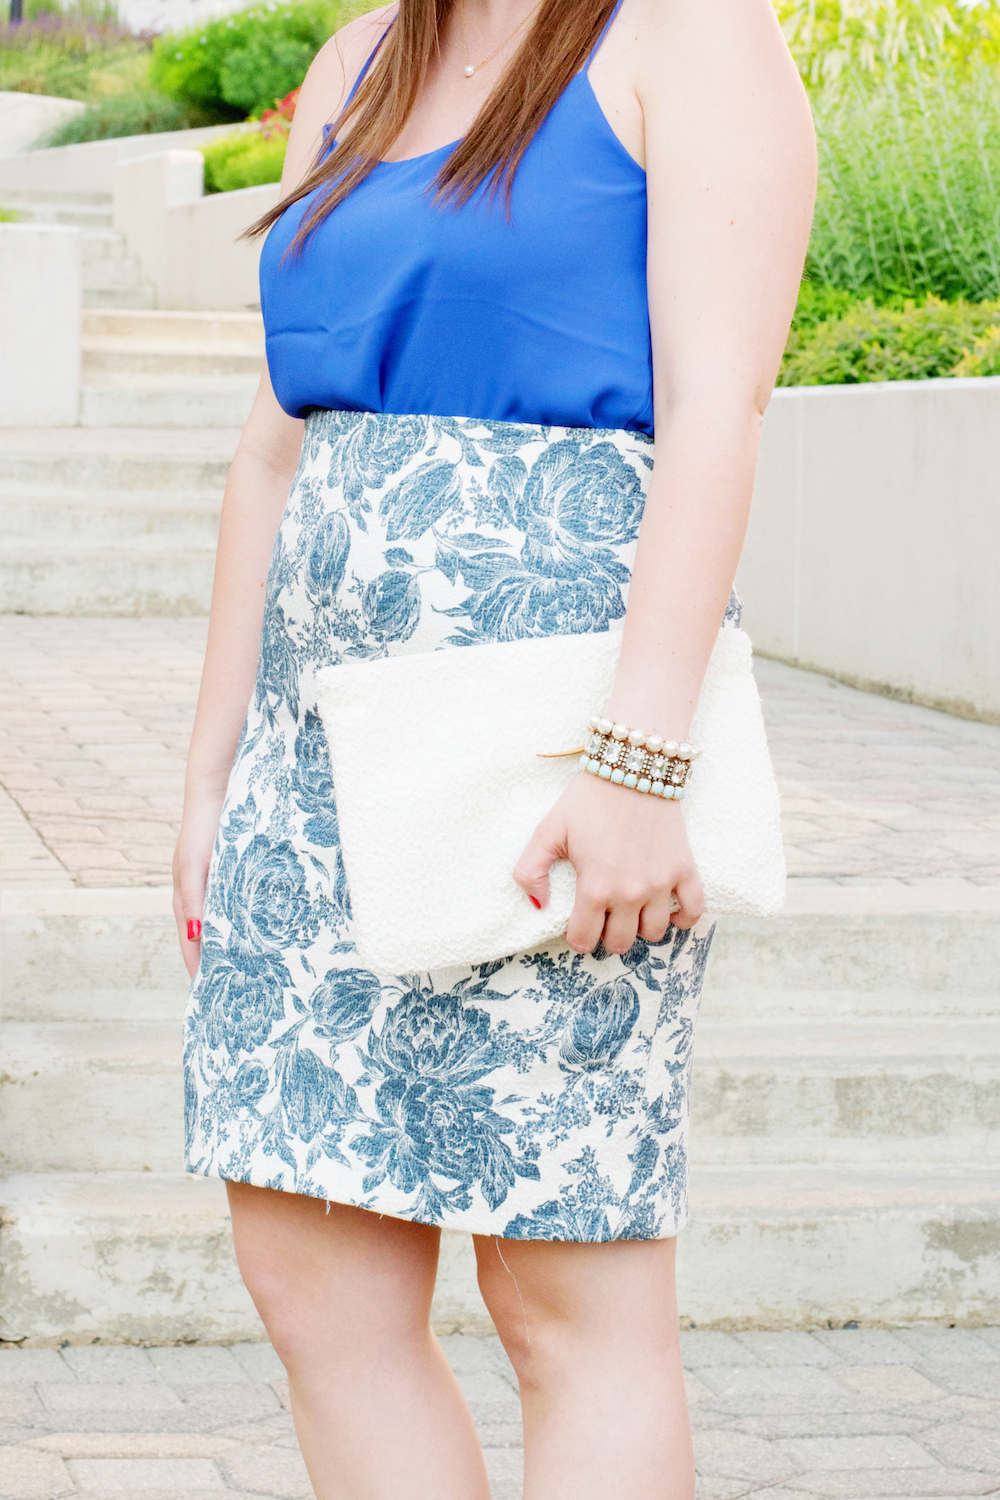 how to wear a pencil skirt in the summer